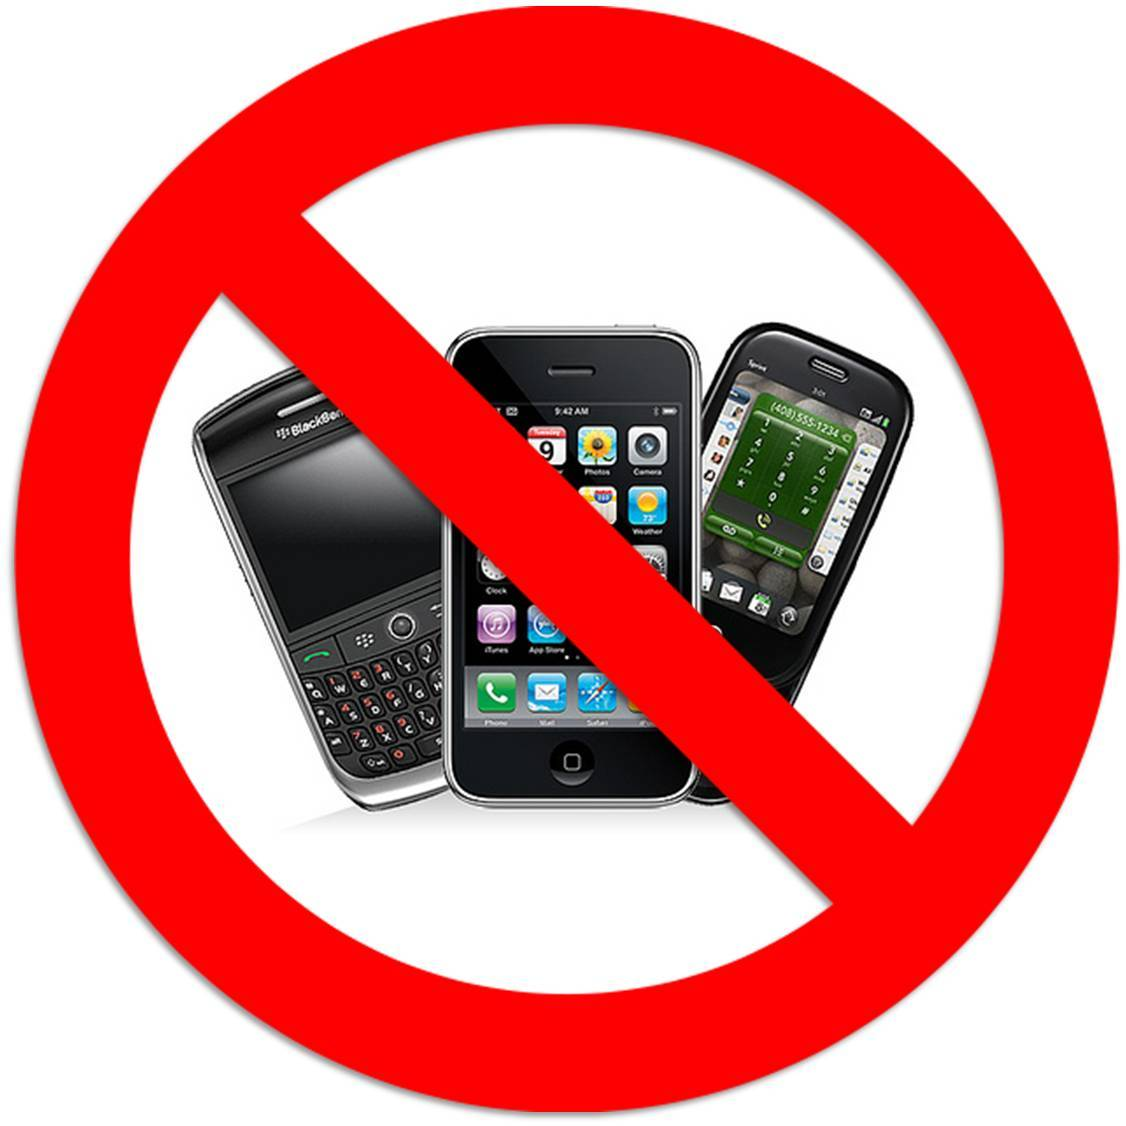 Cells clipart mobile phone. Undo the cell just